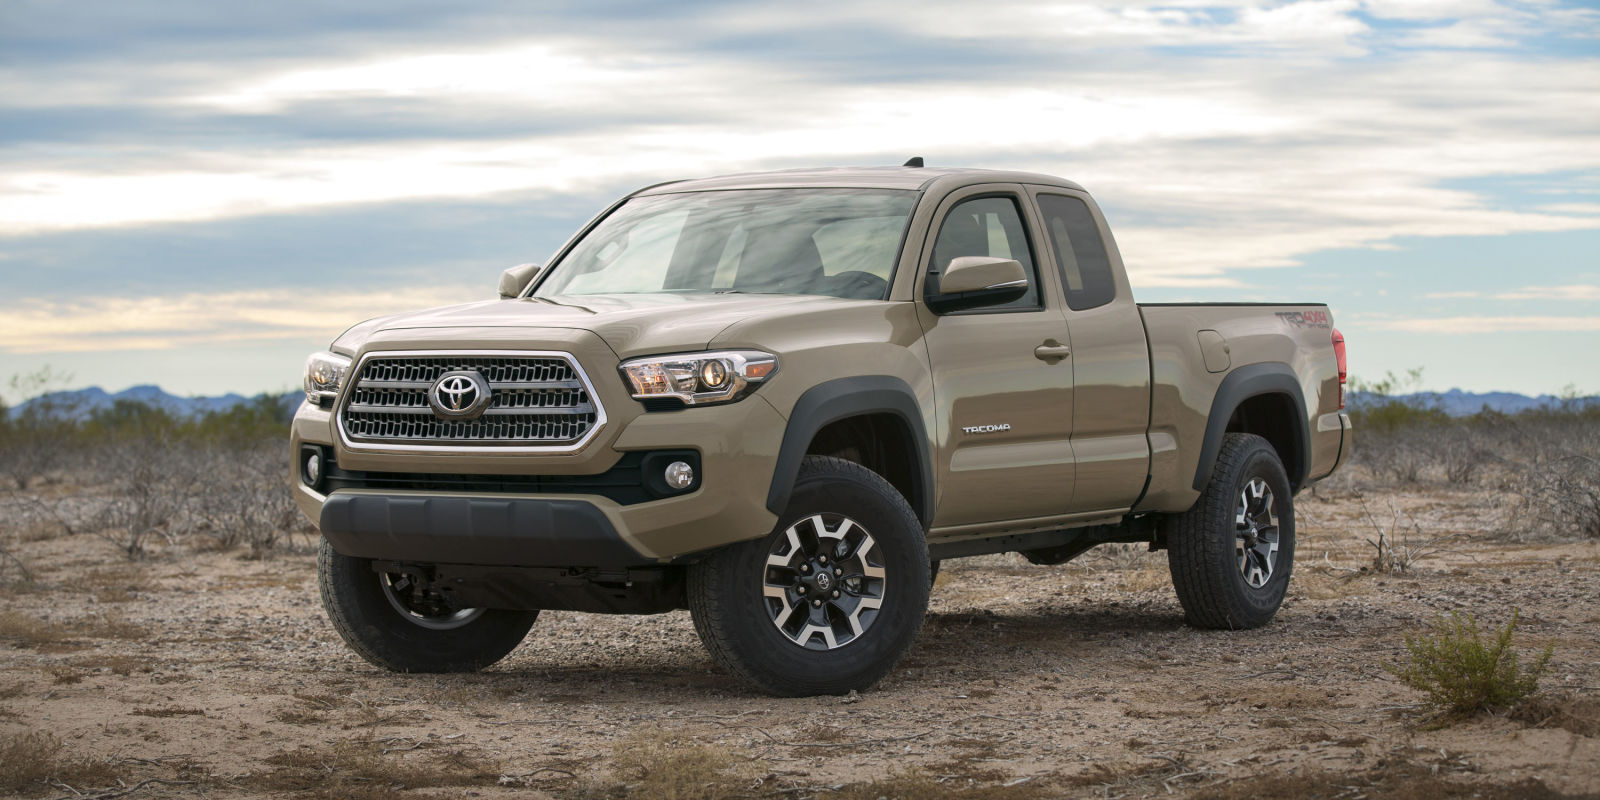 The 2016 Tacoma gets a new V6, six speed automatic